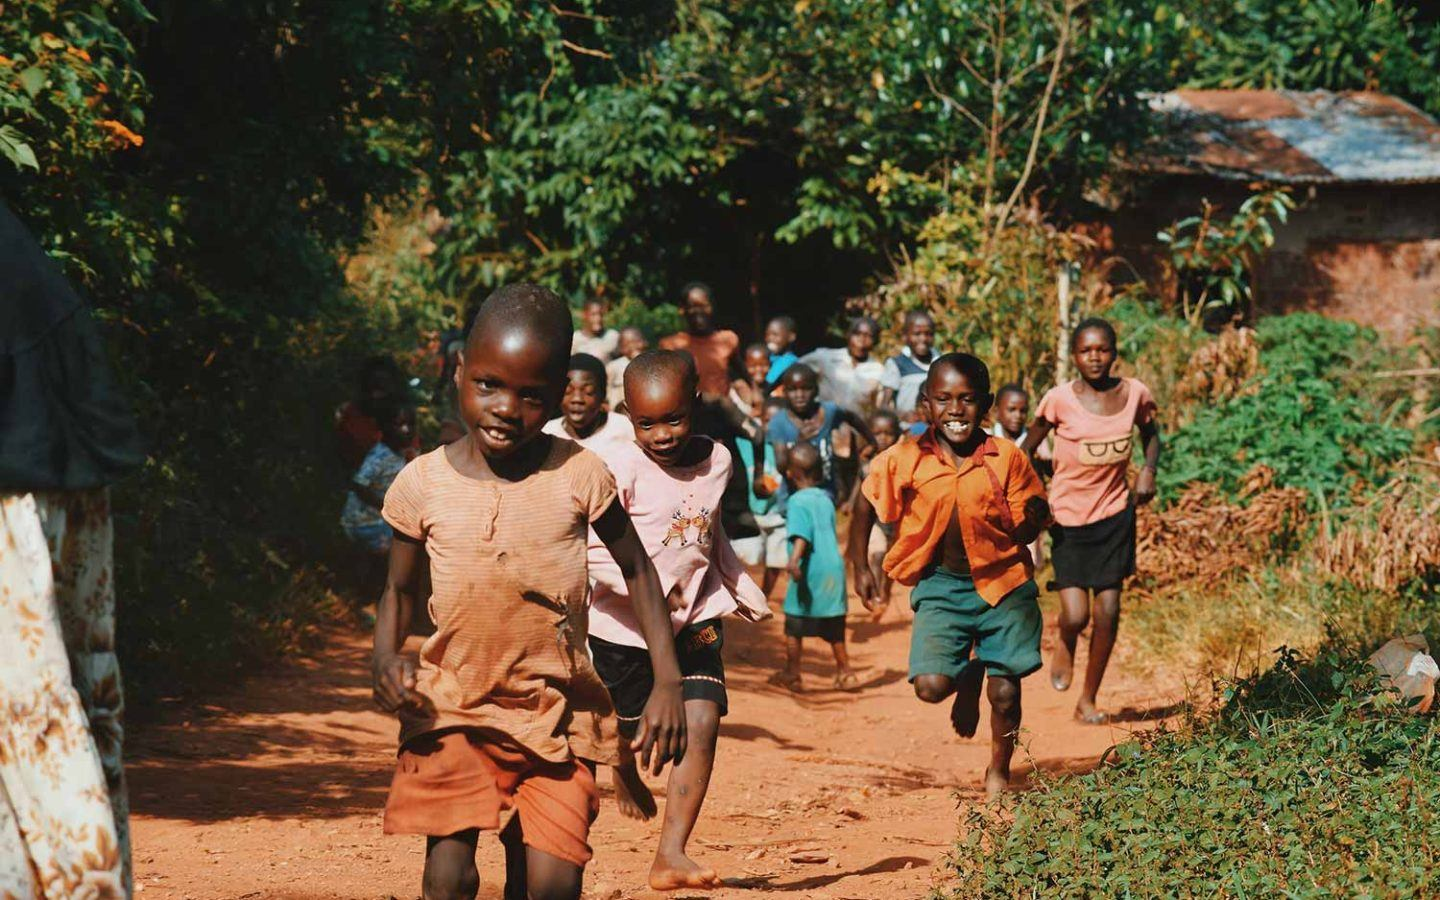 a group of young children in Kenya running down a path and smiling